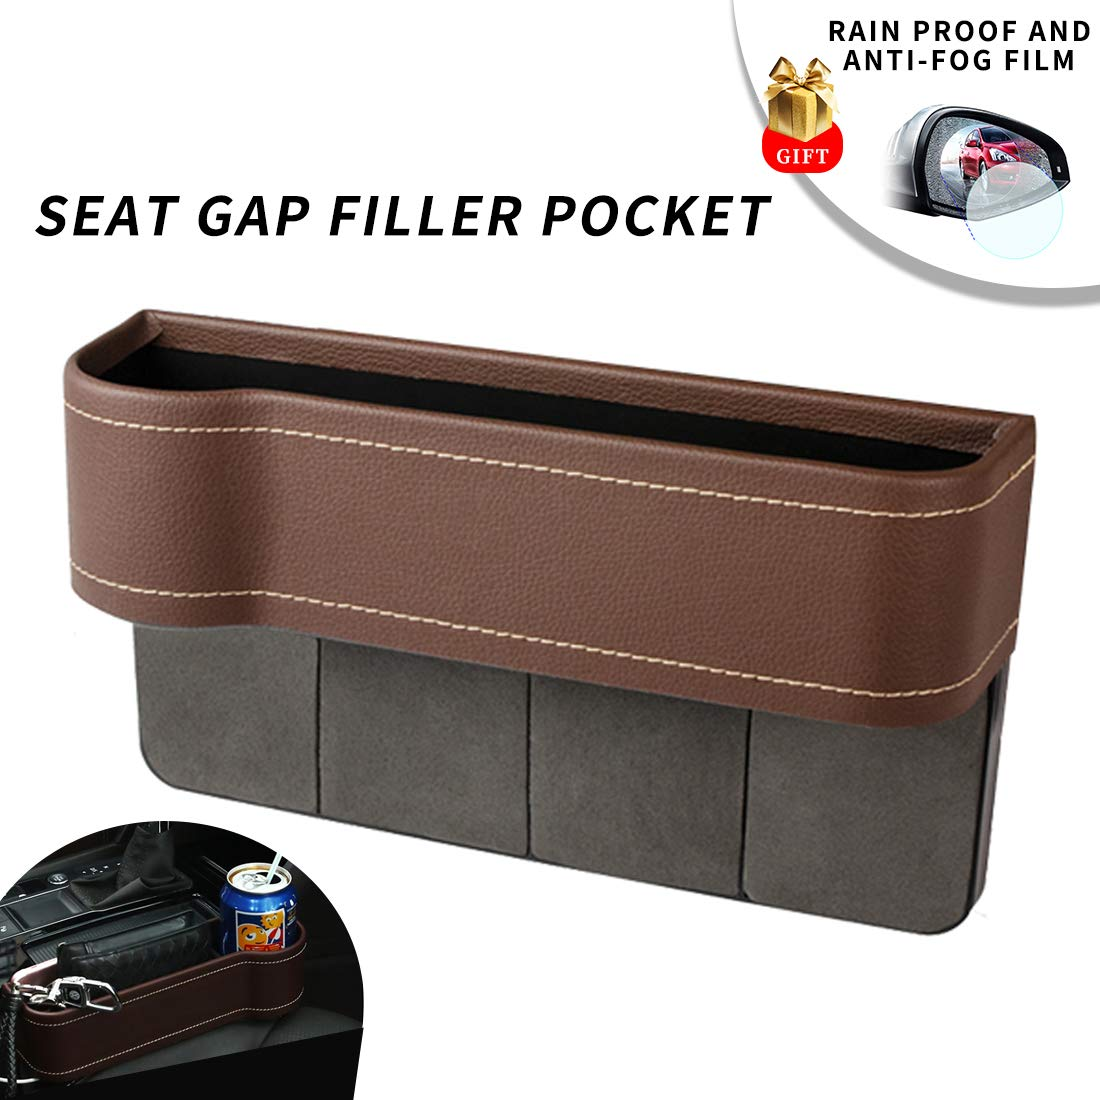 Center Console Side Pocket, PU Leather Car Seat Gap Filler Organizer Catcher with Cup Holder, Pack of 1 (Brown)